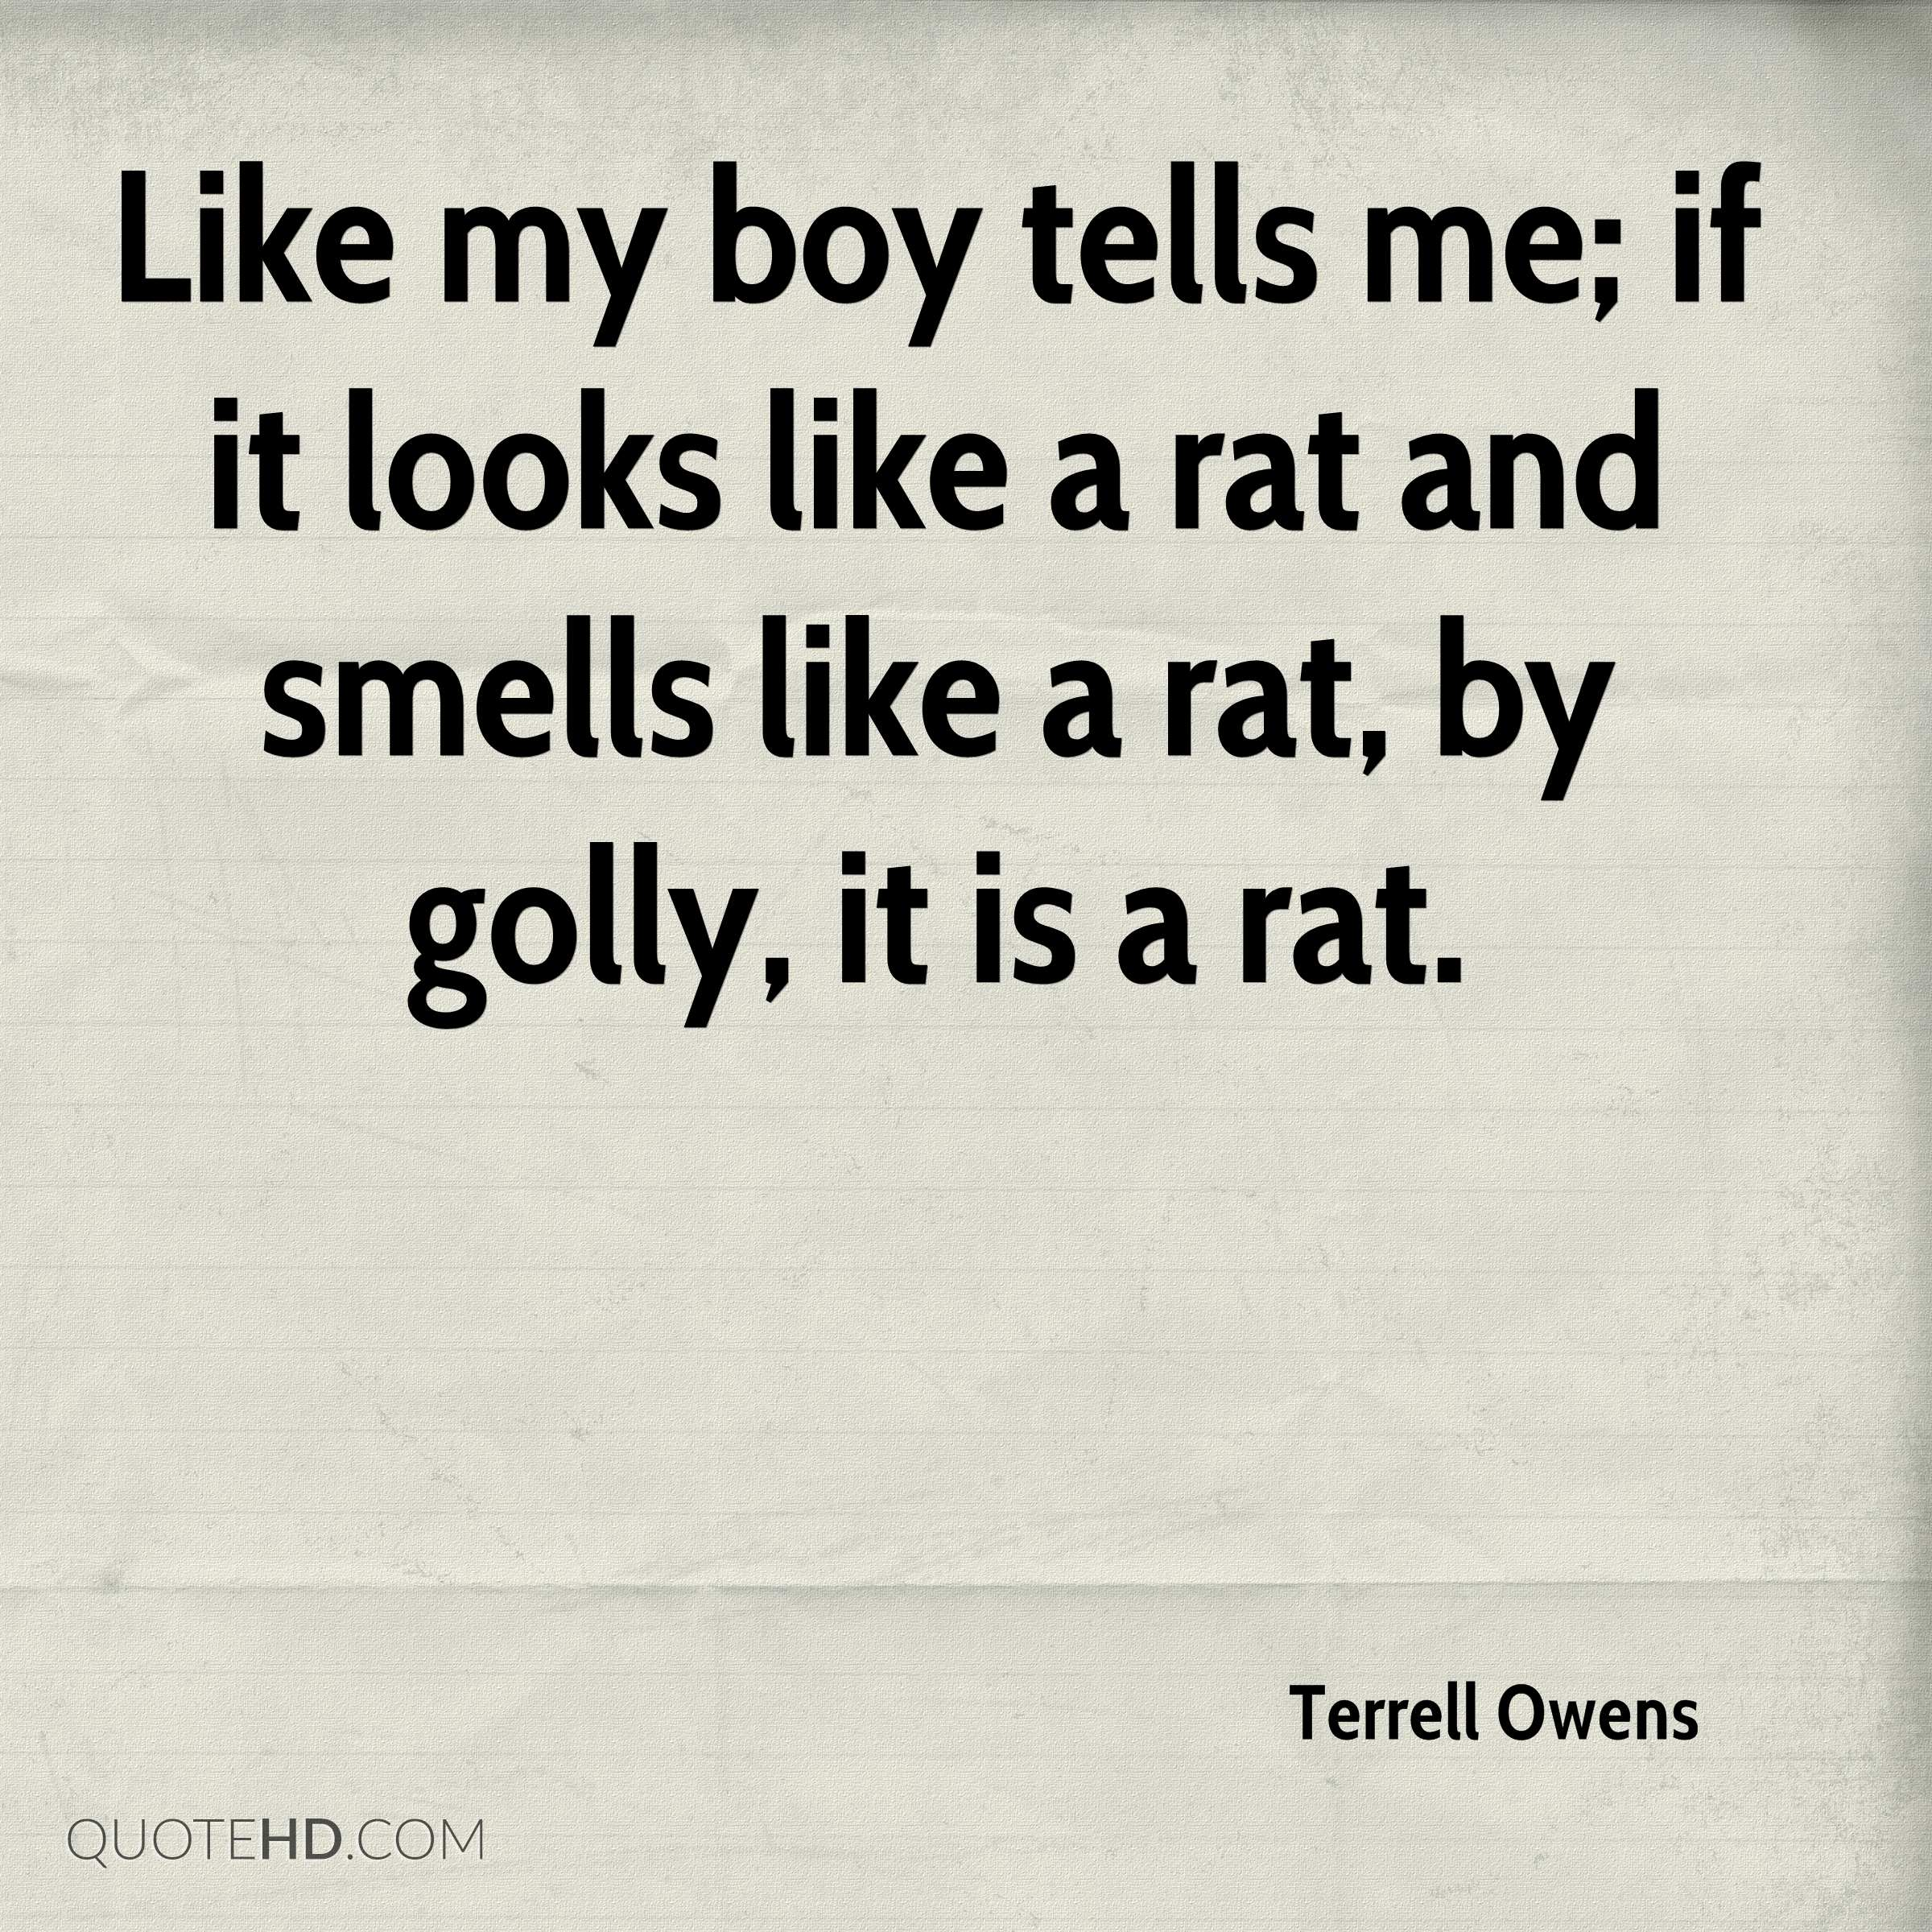 Like my boy tells me; if it looks like a rat and smells like a rat, by golly, it is a rat.